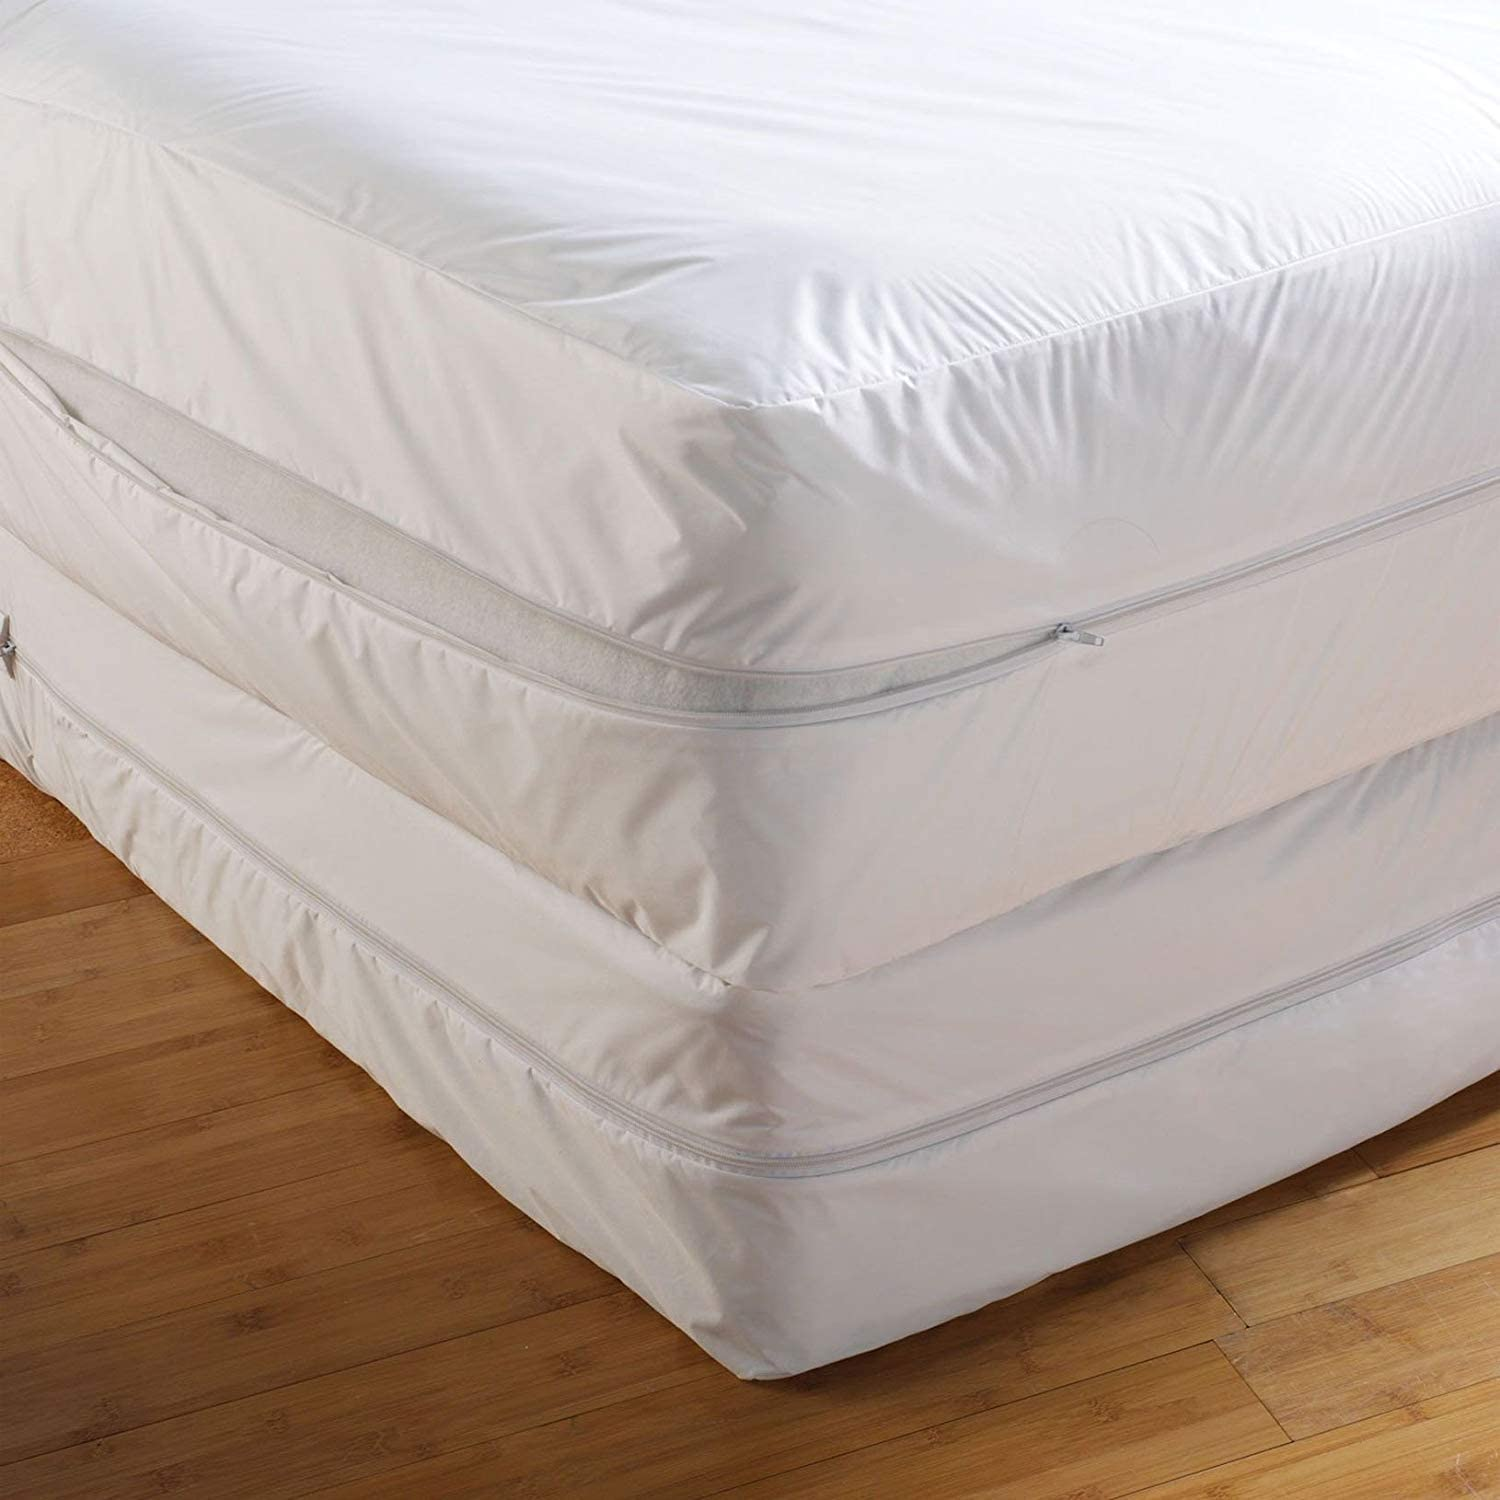 Mattress Protectors Double Bed Bug Proof Cover Zippered Lab Certified Encasement Absorbent Anti Allergy Anti Dust Mite Anti Bacterial 6 Months Warranty Non Noisy Ease Asthma Itchy Feelings Allergens Pet Dander All Uk Sizes Amazon Co Uk Kitchen Home